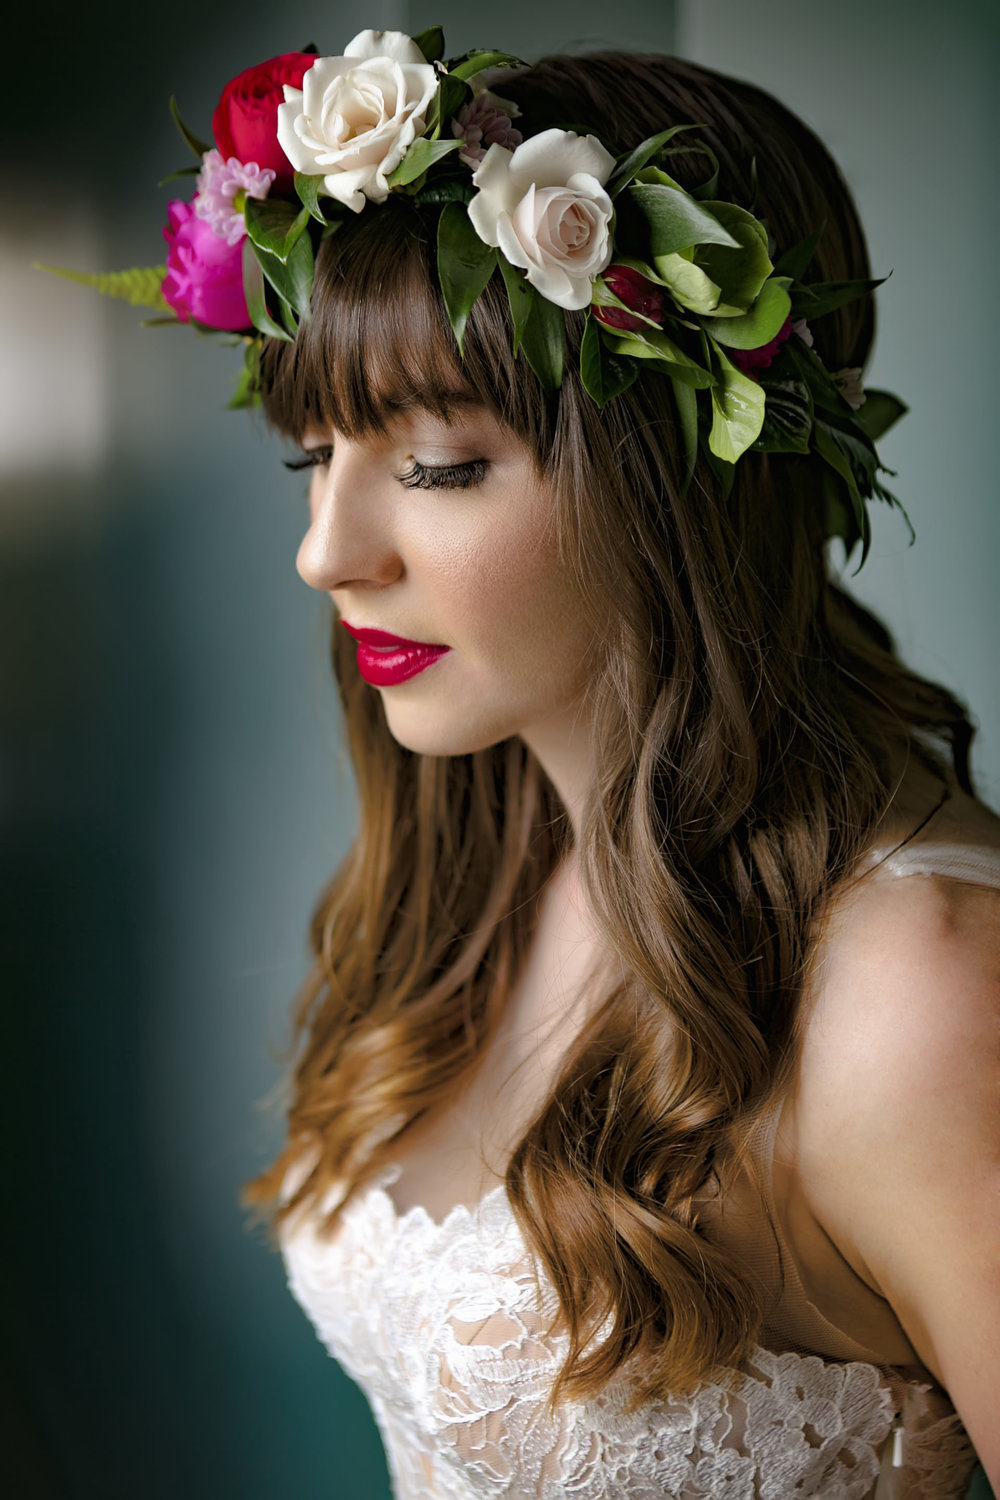 Flower crowns hair flowers the bloom of time 116a8537g izmirmasajfo